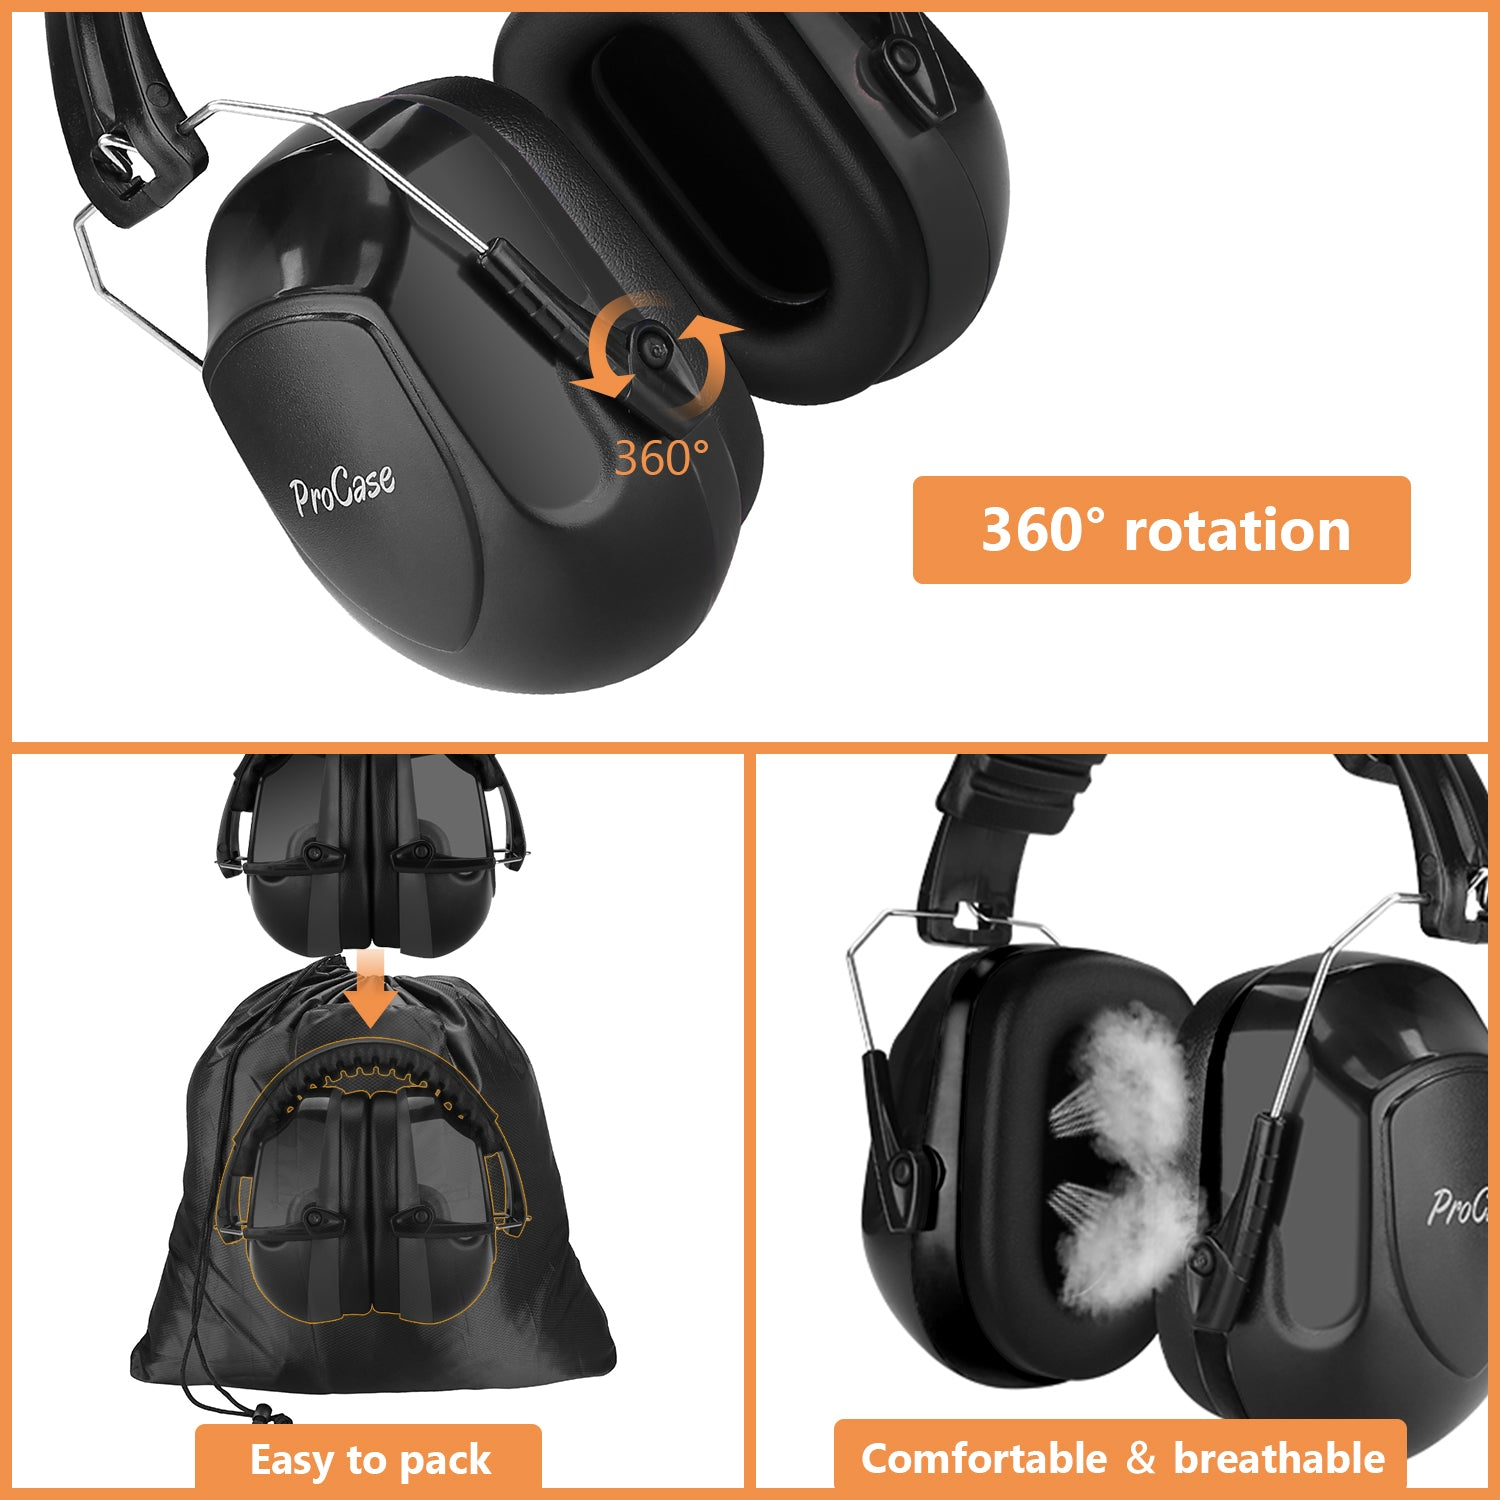 Noise Reduction Cancelling Ear Muffs Hearing Protection | ProCase